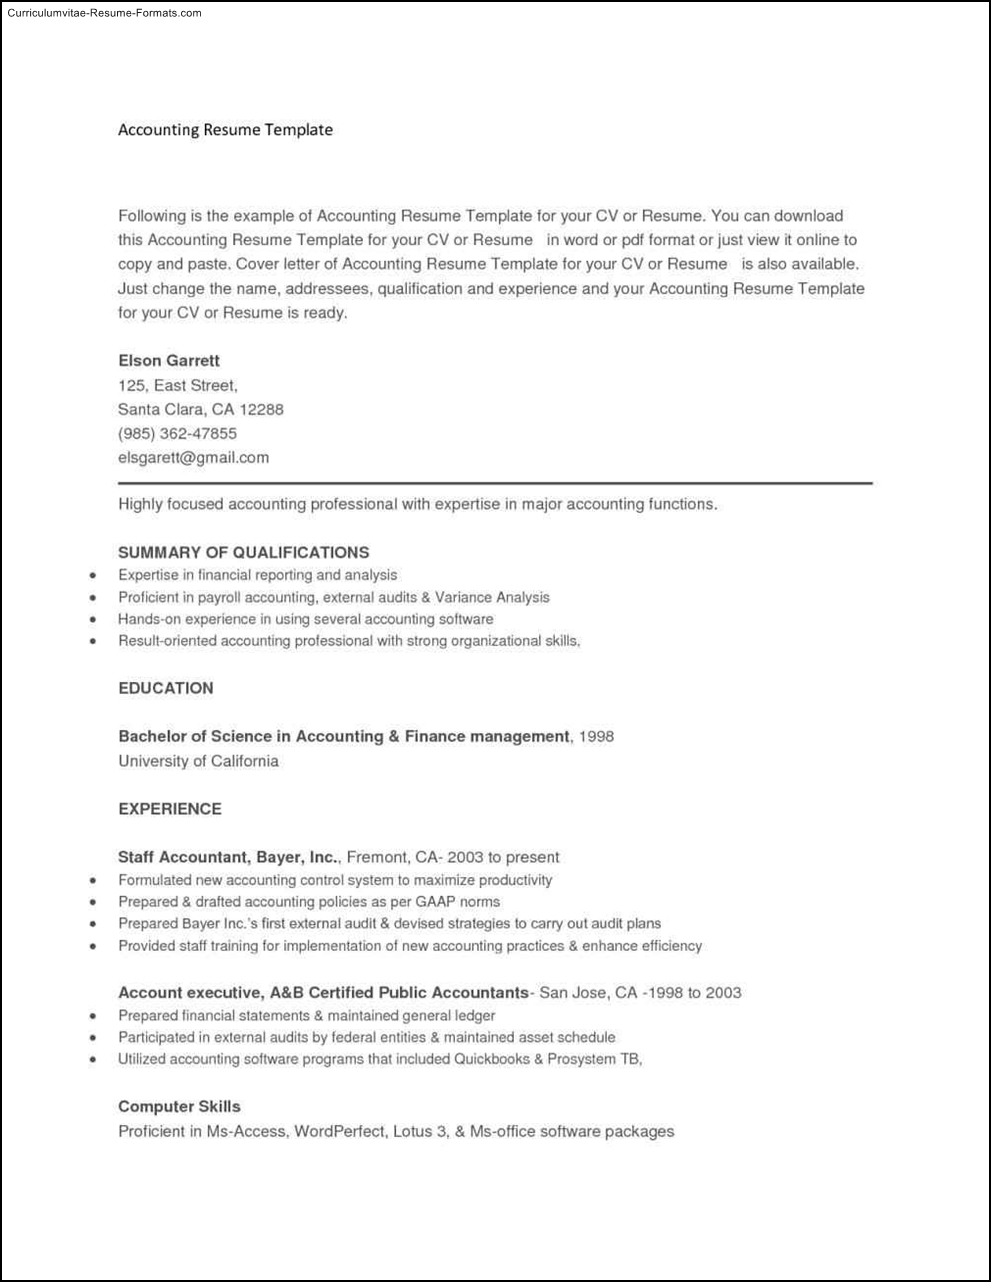 Copy-And-Paste-Resume-Templates Sample Copy Of Resume Format on curriculum vitae, job application,